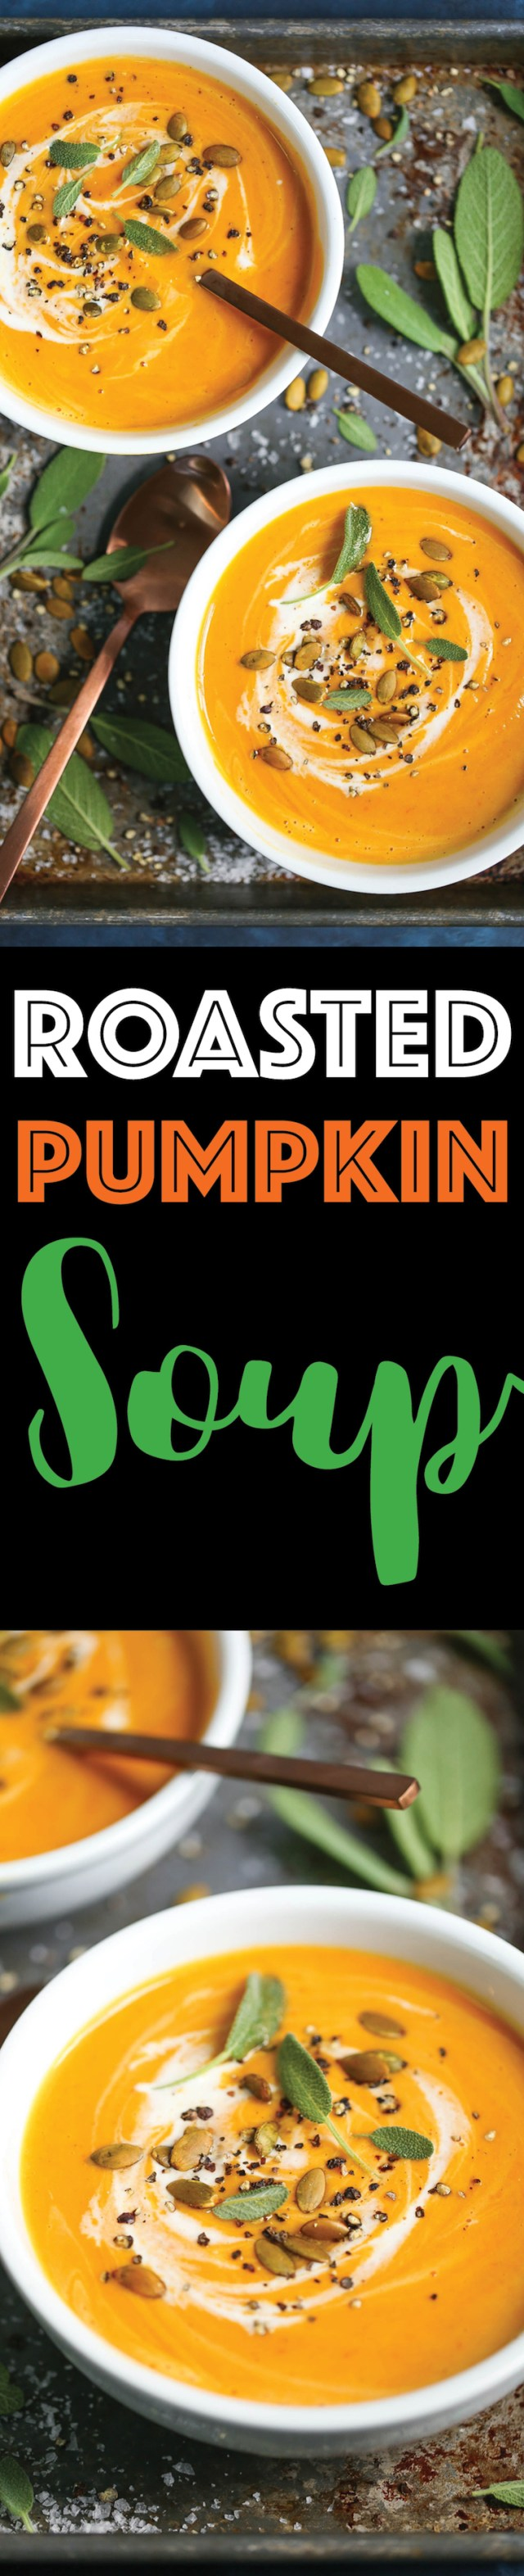 Roasted Pumpkin Soup -My favorite Fall and Winter soup! You'll really want it all year long. And you can also substitute the pumpkin with butternut squash!